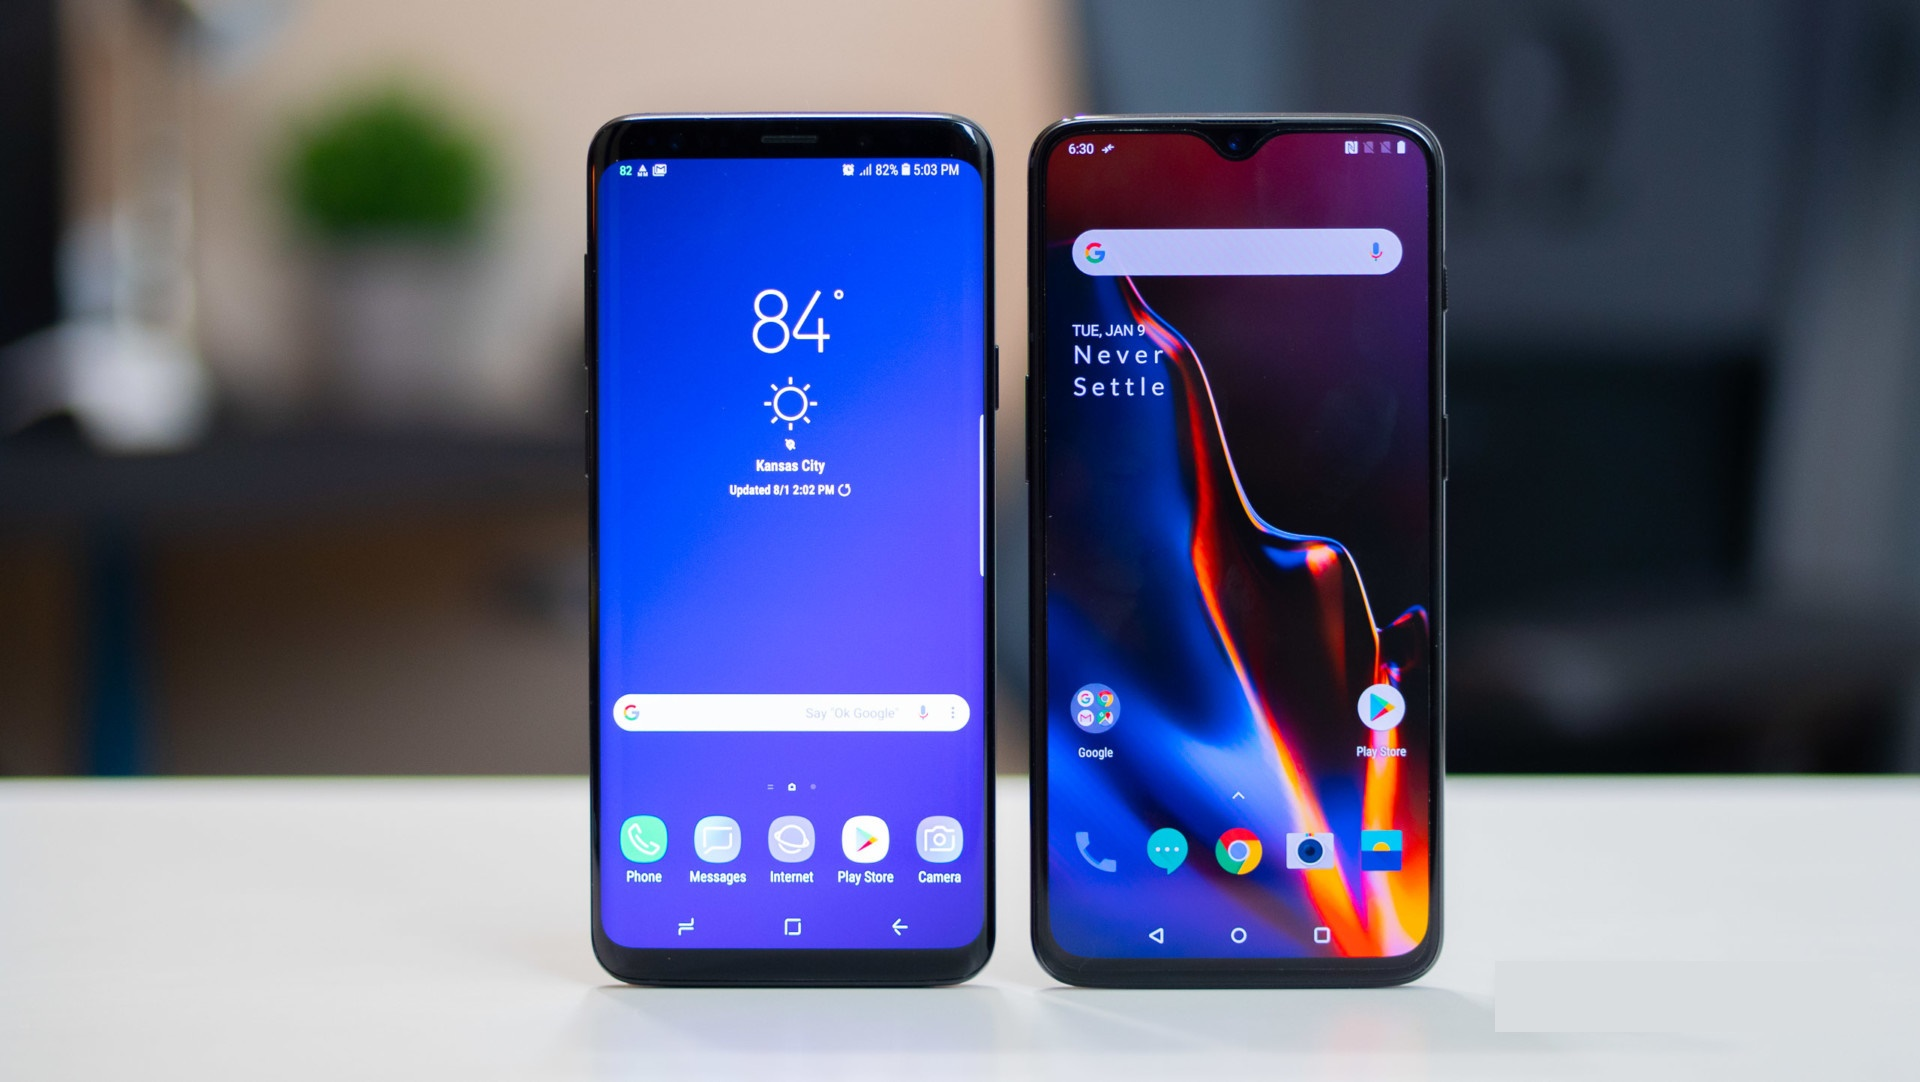 Samsung Galaxy S10+ vs OnePlus 7